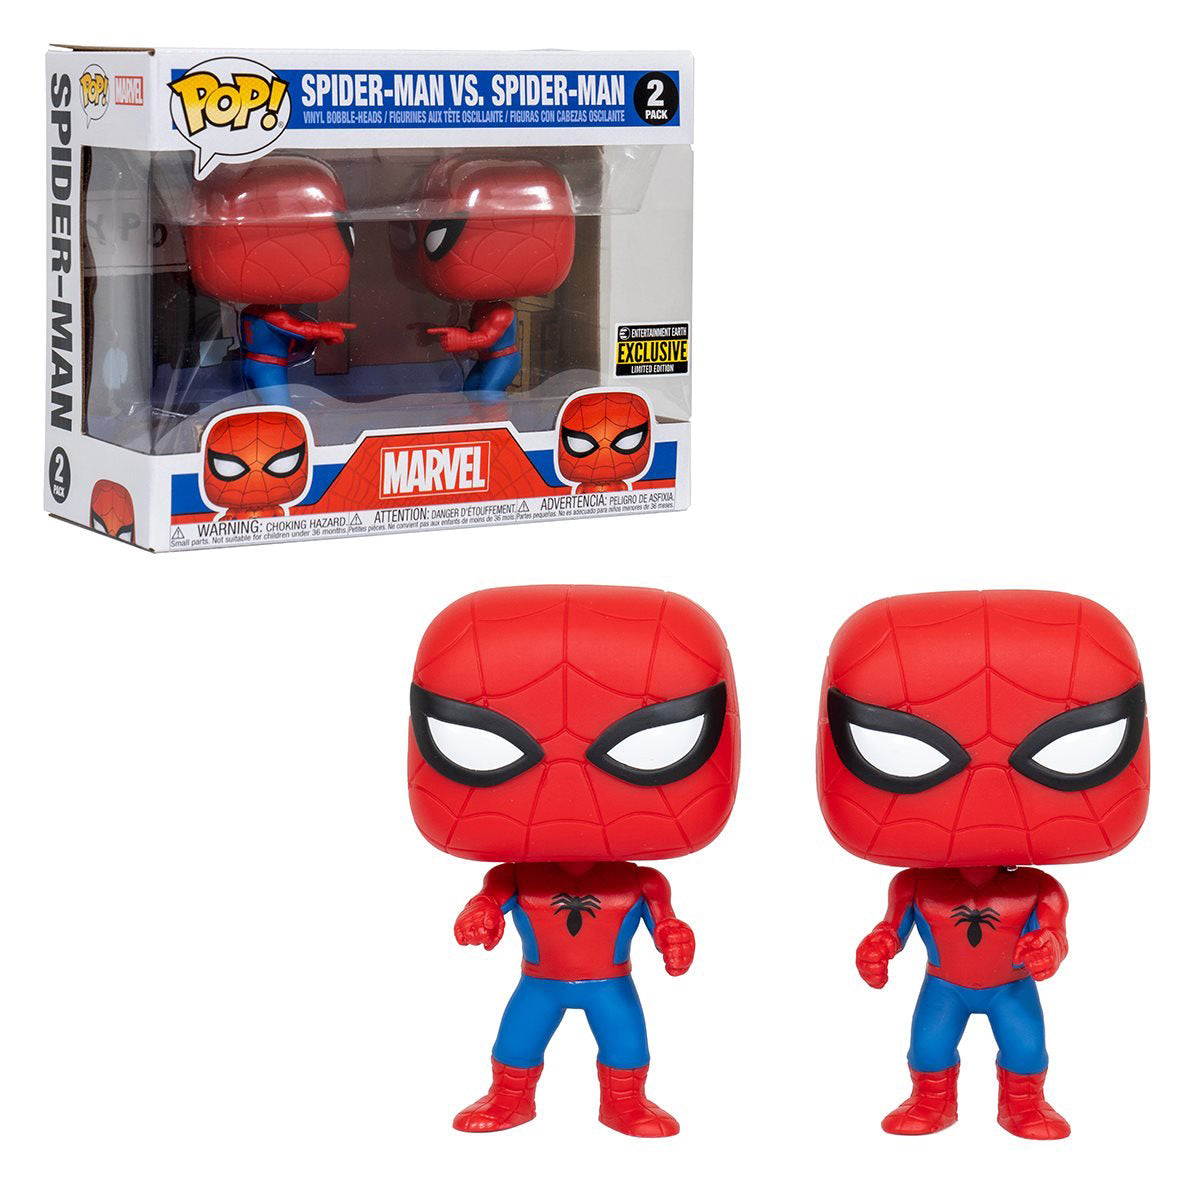 Marvel Spider-Man vs Spider-Man Imposter 2-Pack Exclusive